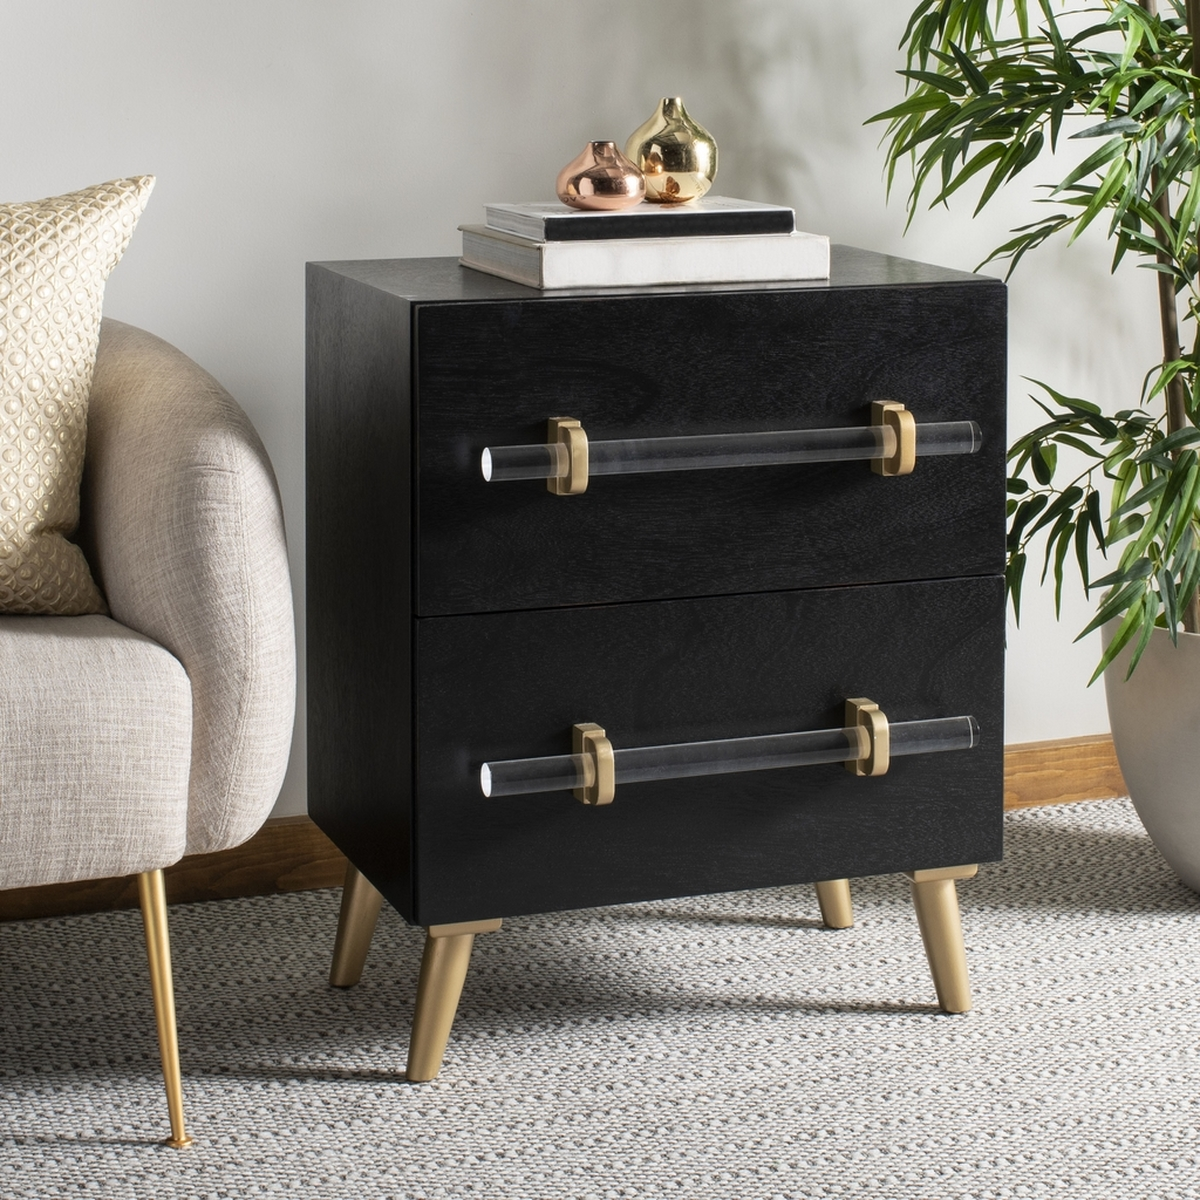 Nst6600a Nightstands Furniture By Safavieh